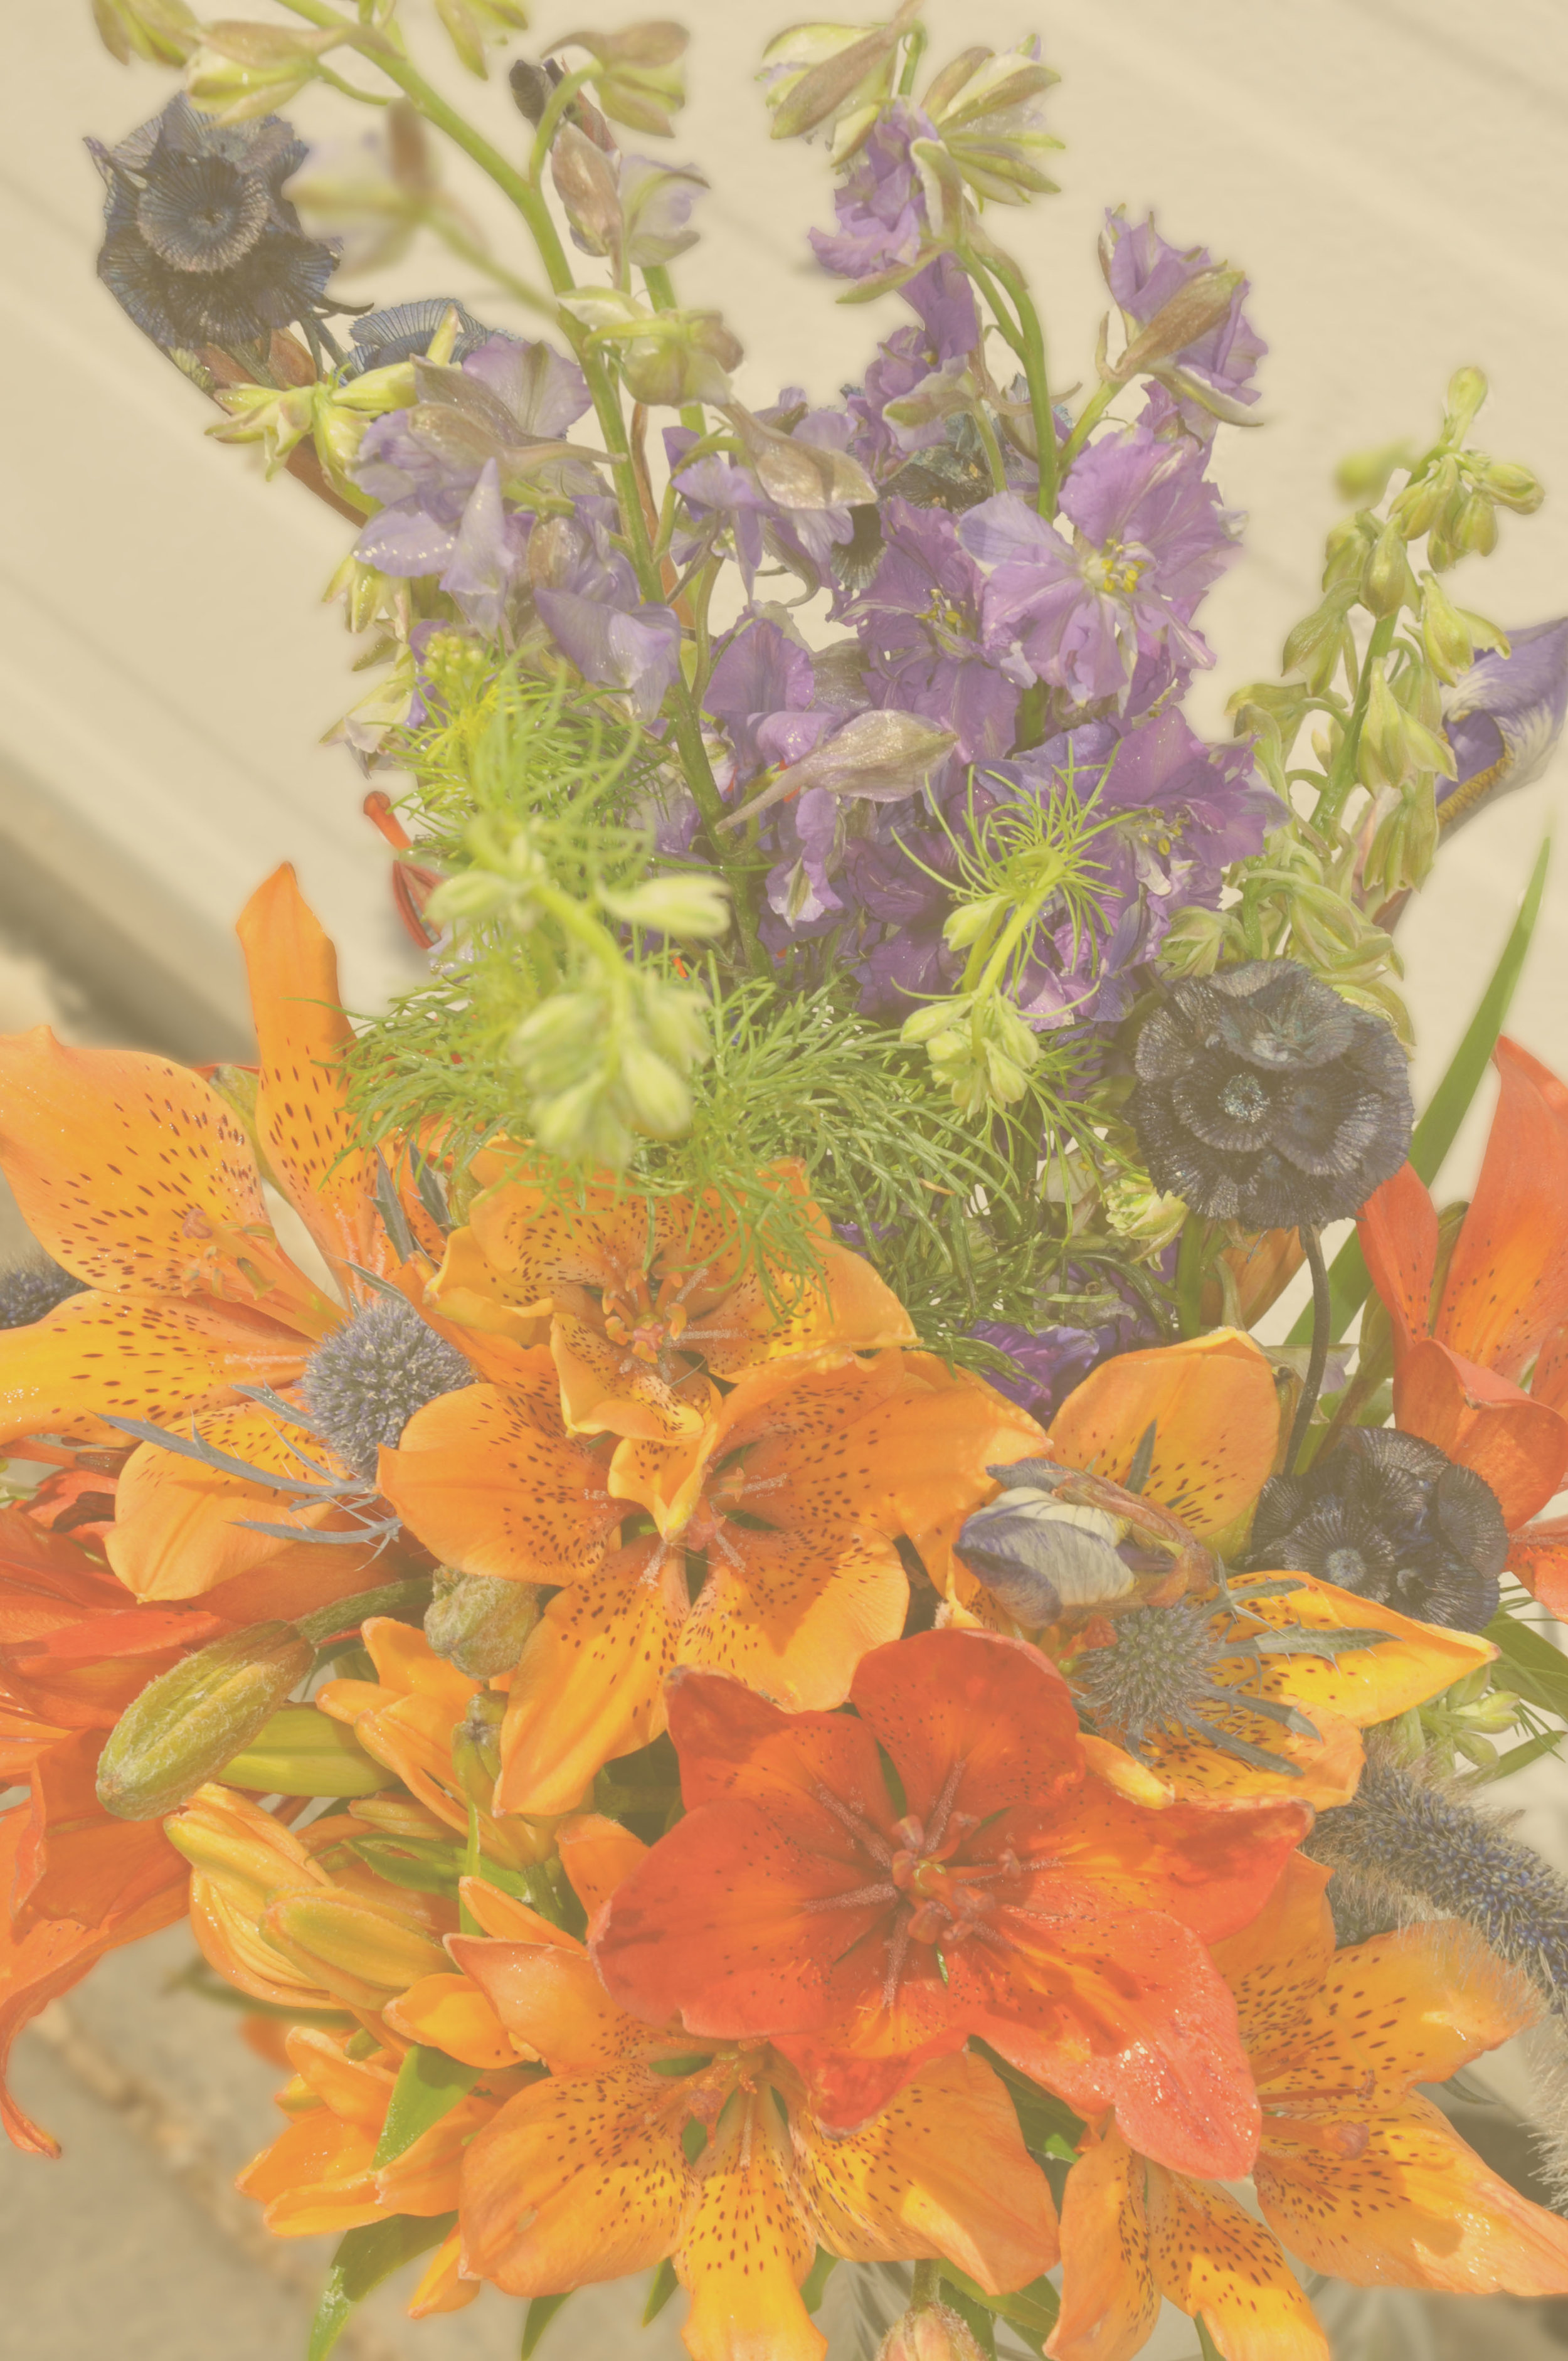 Subscription Package A - In season flower arrangements in a vase4 deliveries - 1/monthJune 15-Sept.30$295 plus taxesPick up on farm - save $50